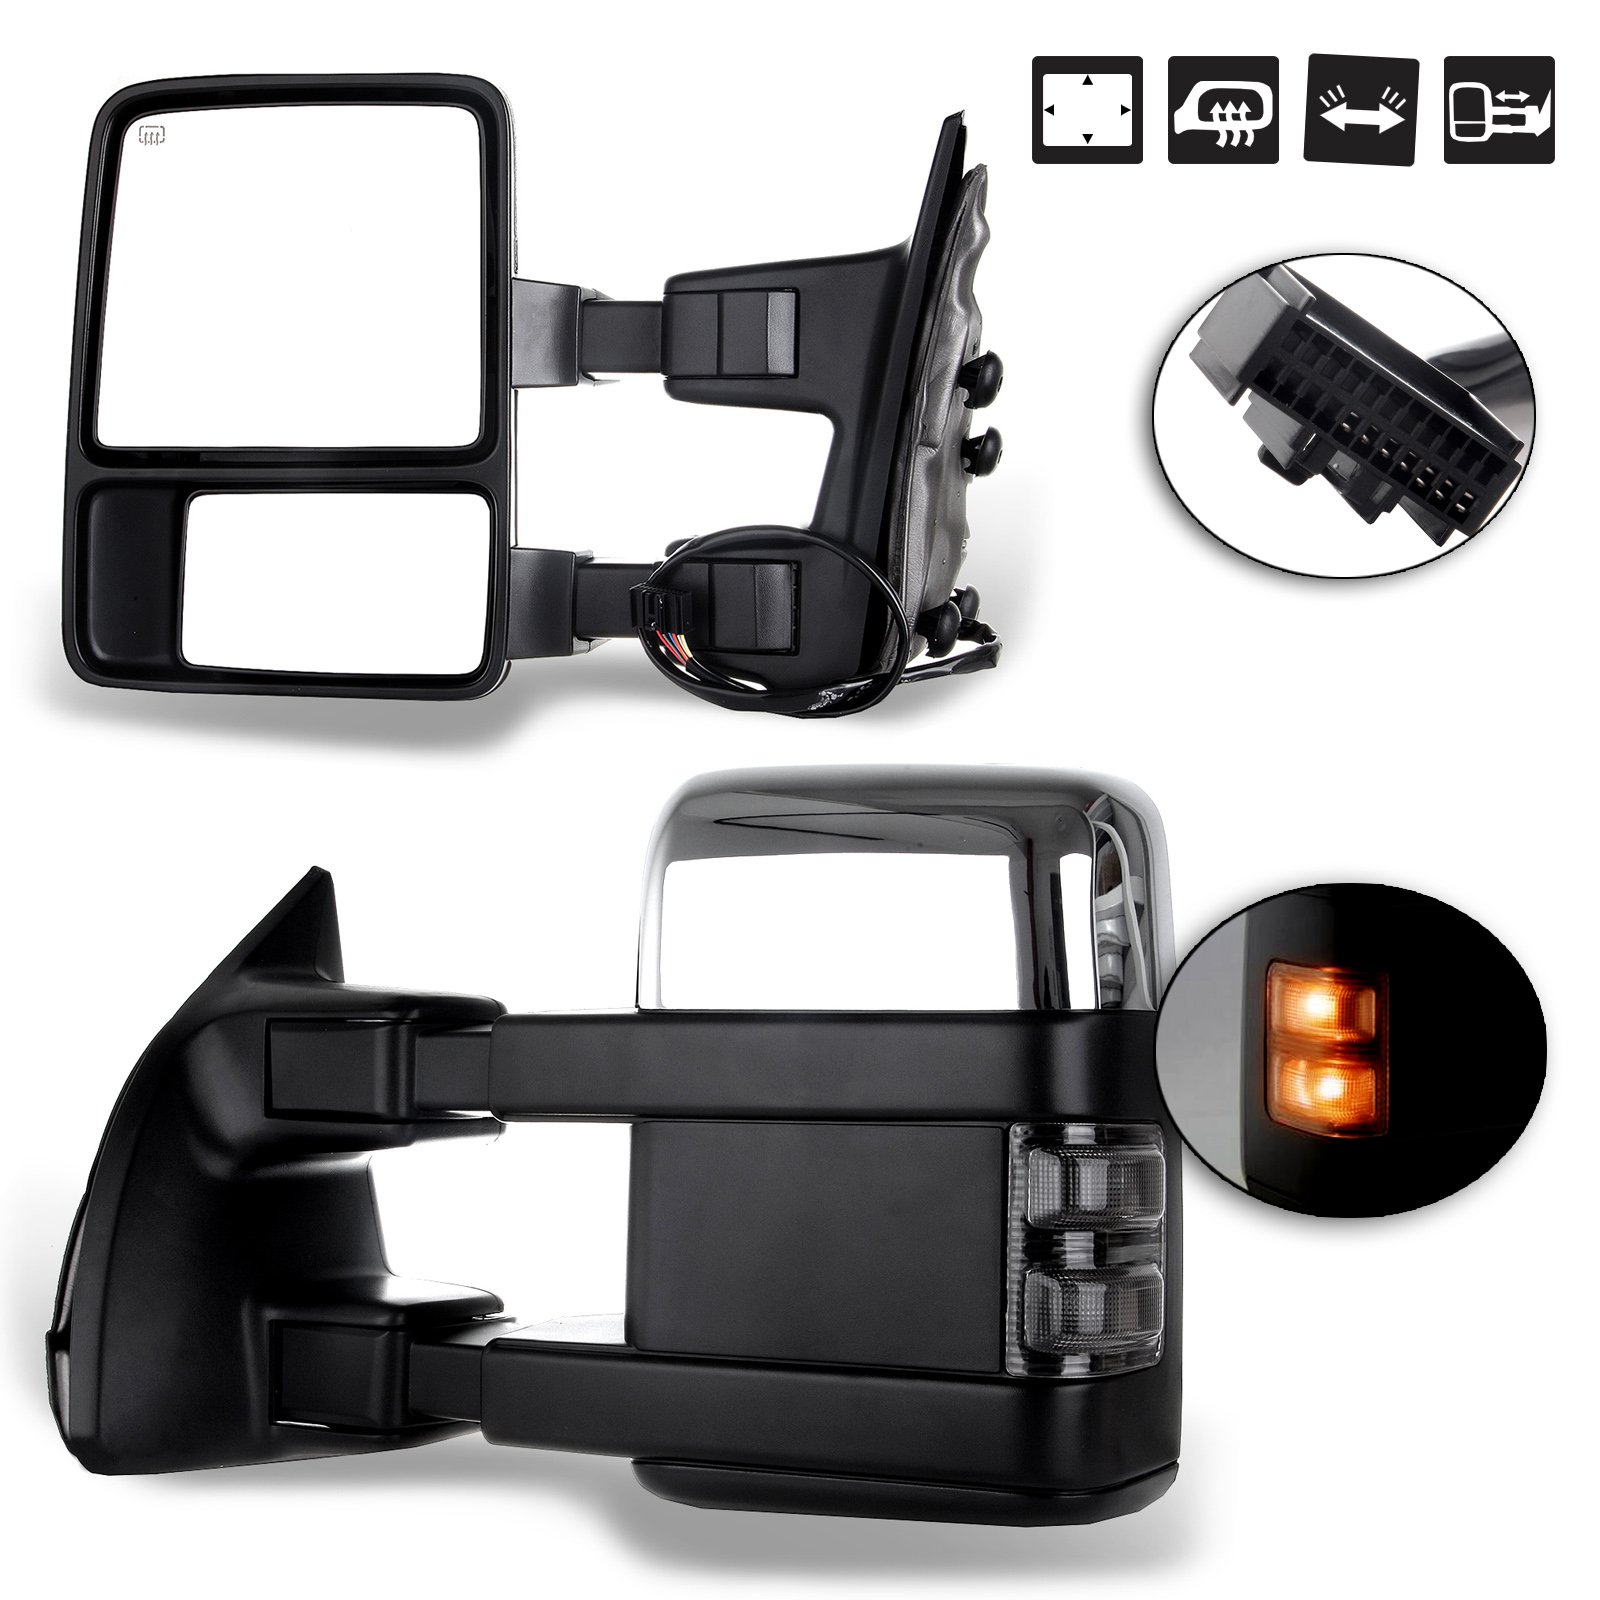 SCITOO fit Ford Towing Mirrors Chrome Rear View Mirrors fit 2008-2016 Ford F250 F350 F450 F550 Super Duty Truck Larger Glass Power Control, Heated Turn Signal Manual Extending Folding by SCITOO (Image #1)